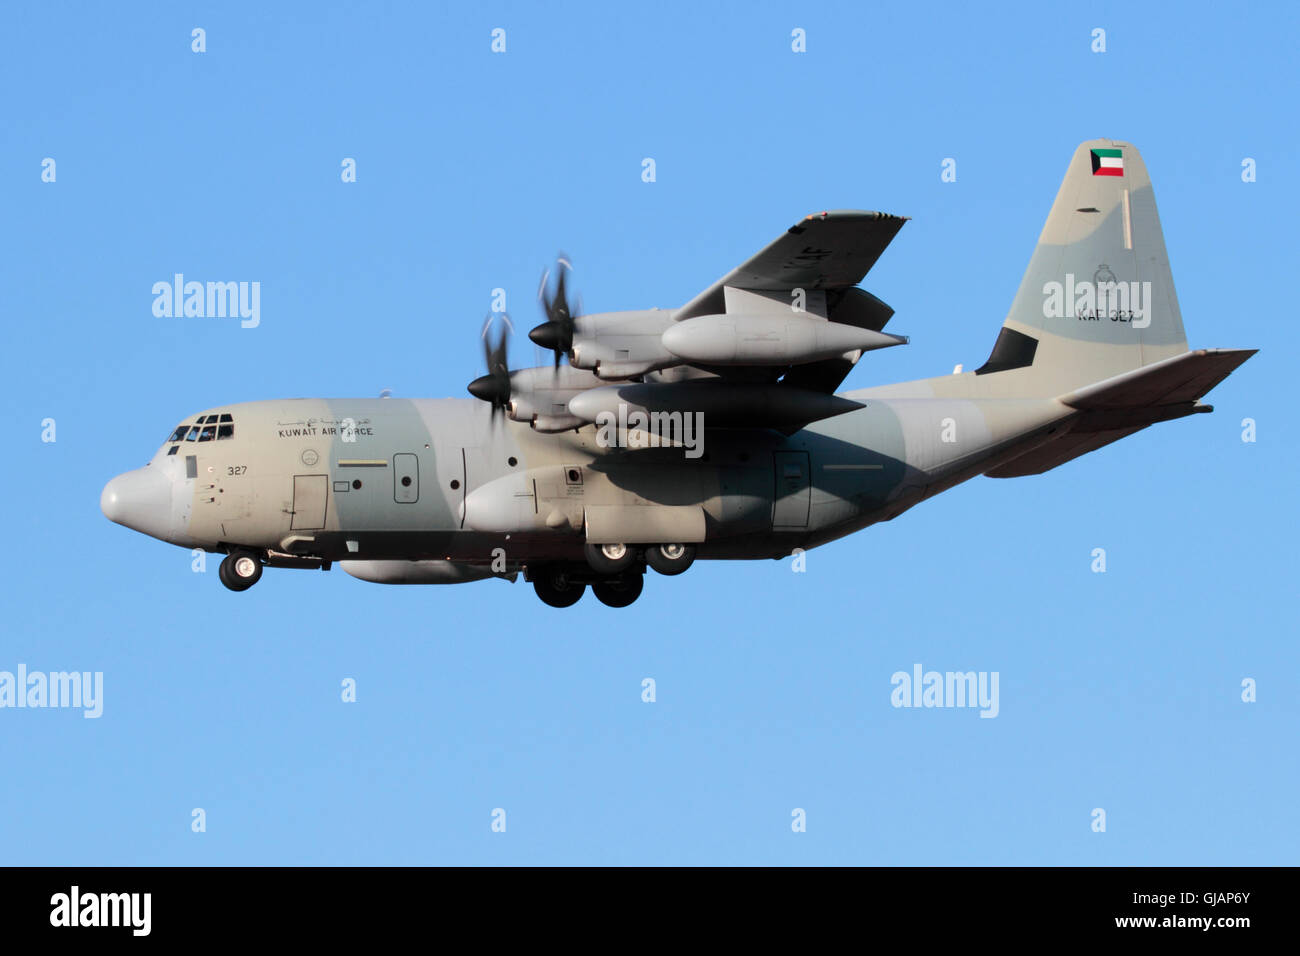 Lockheed Martin KC-130J Hercules of the Kuwait Air Force on approach against a clear blue sky - Stock Image